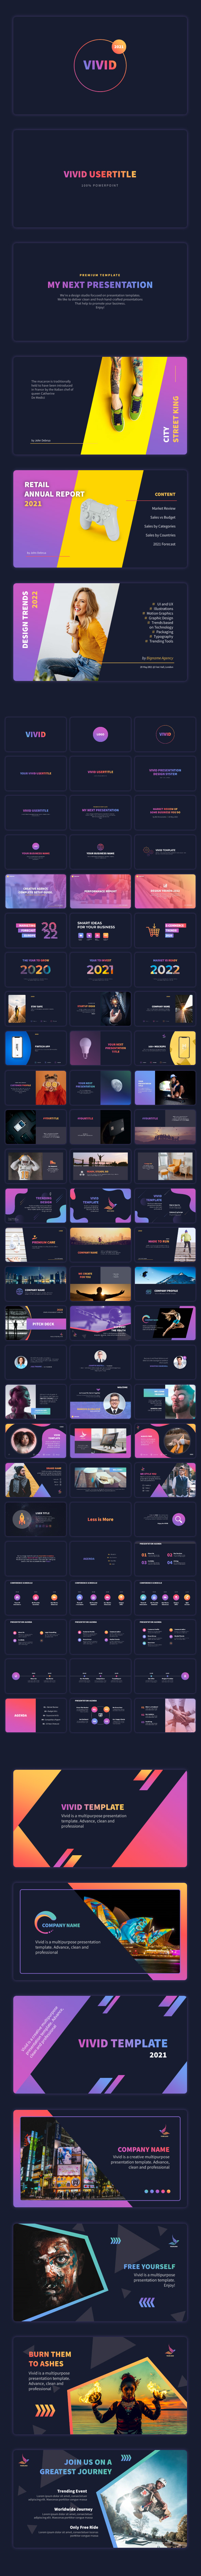 VIVID 2021 - Professional PowerPoint Presentation Template - 12